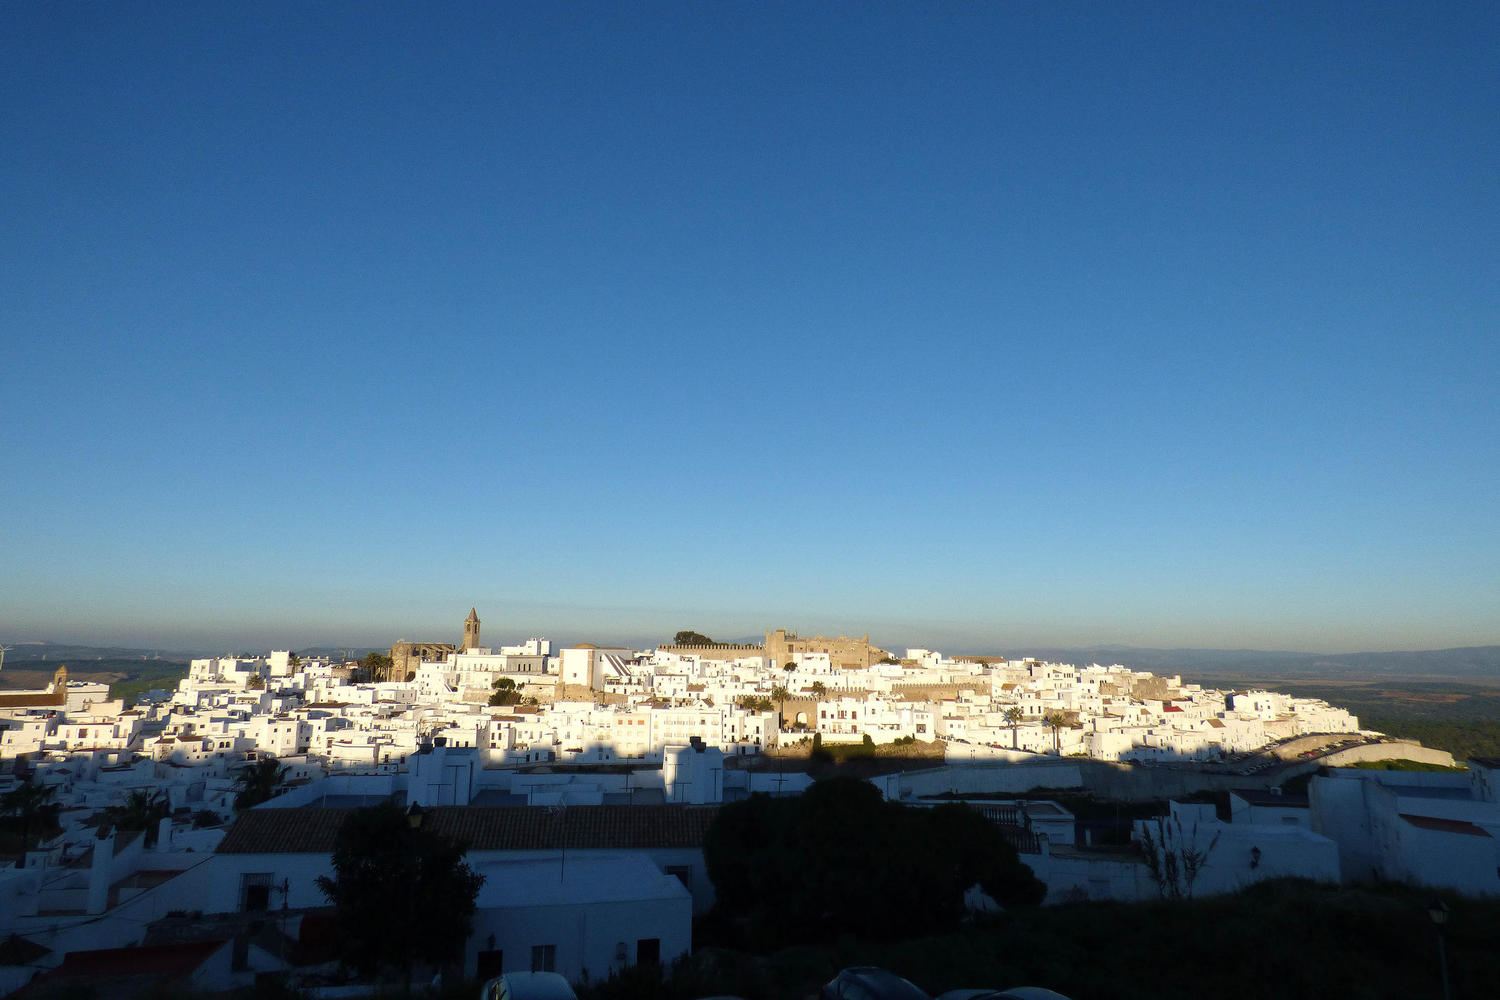 White village and blue sky, the essence of Andalucia. Vejer, Cadiz